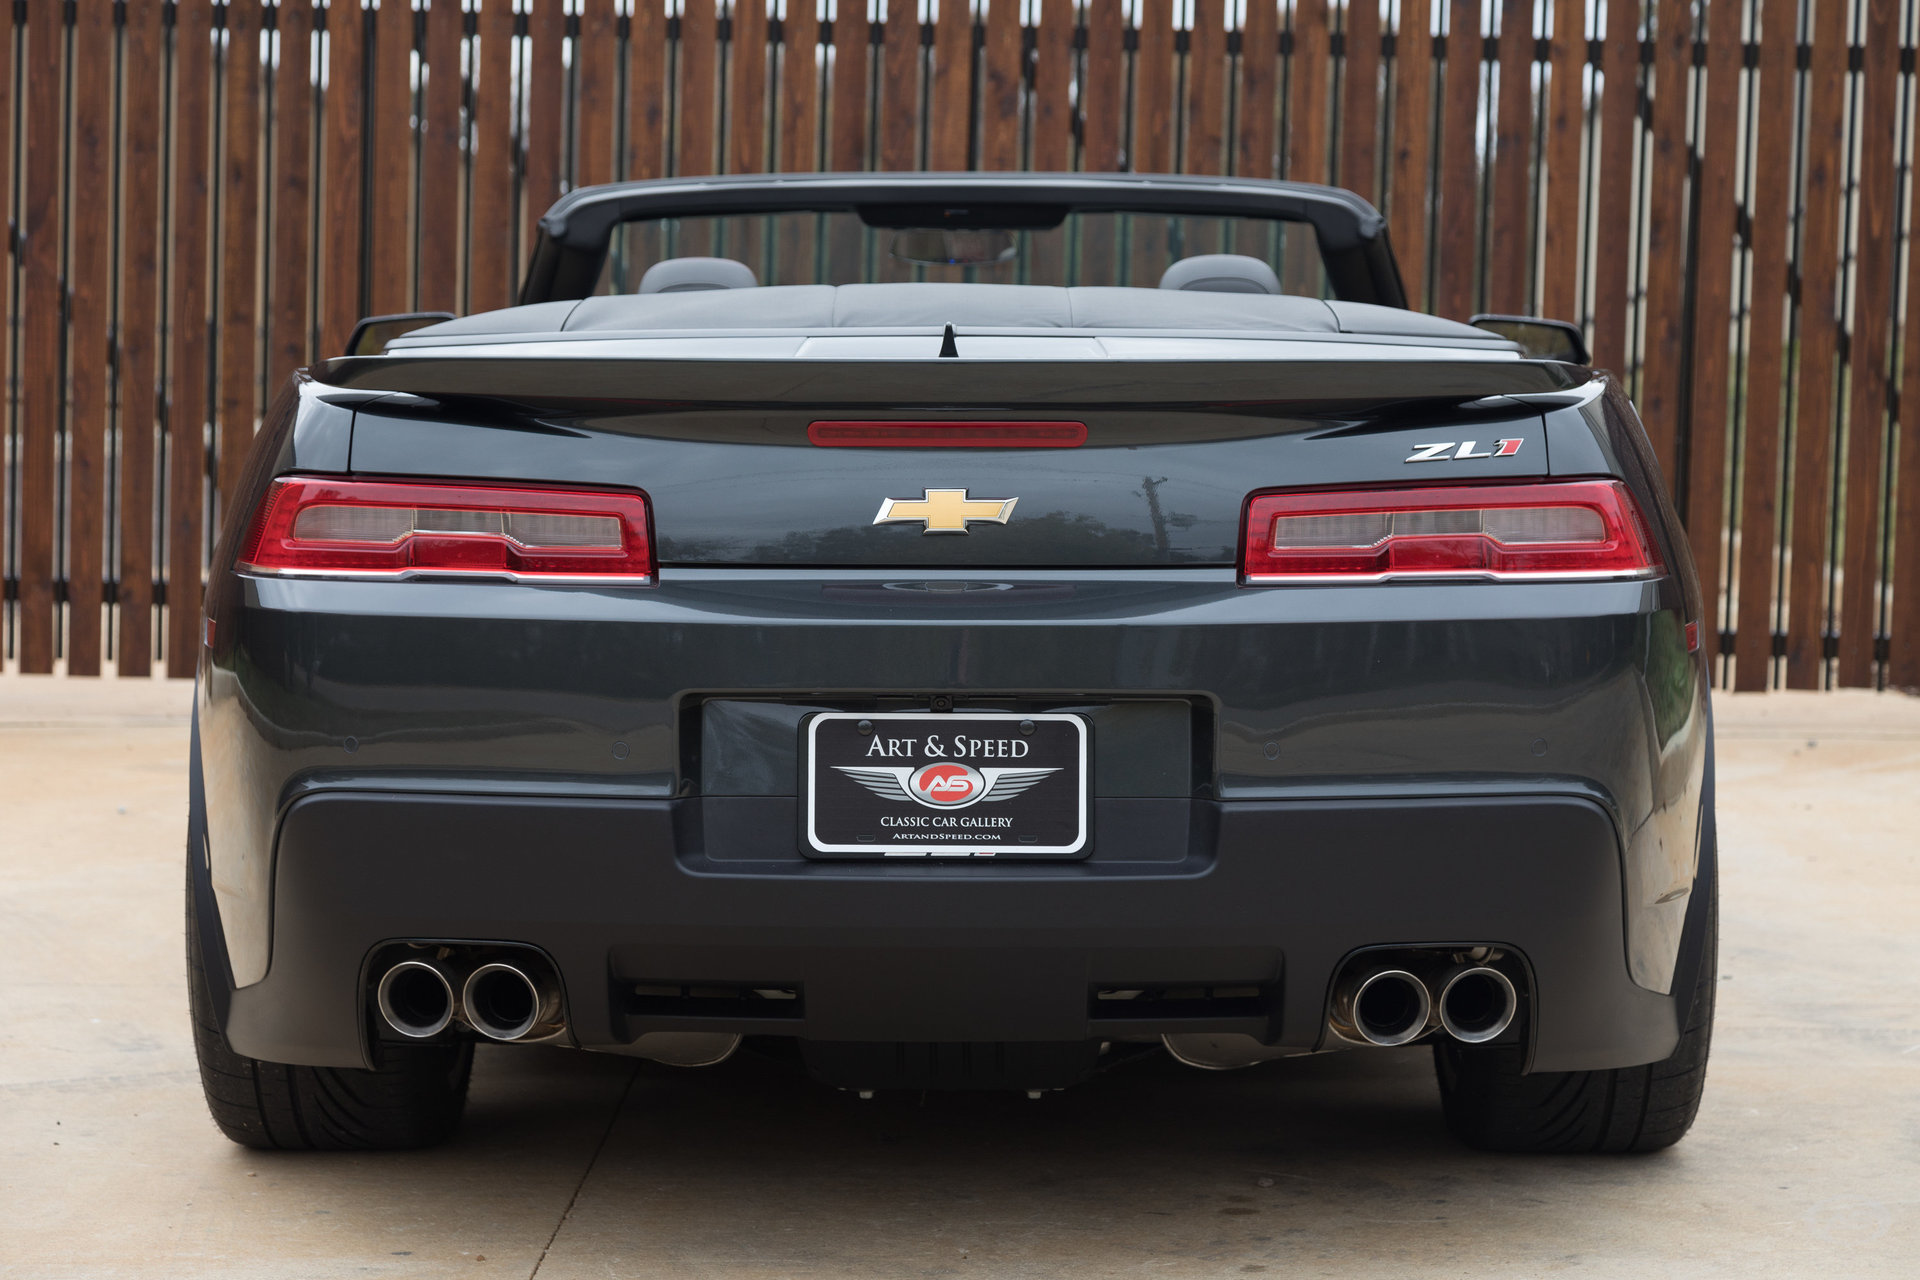 2015 Chevrolet Camaro Zl1 For Sale 75169 Mcg